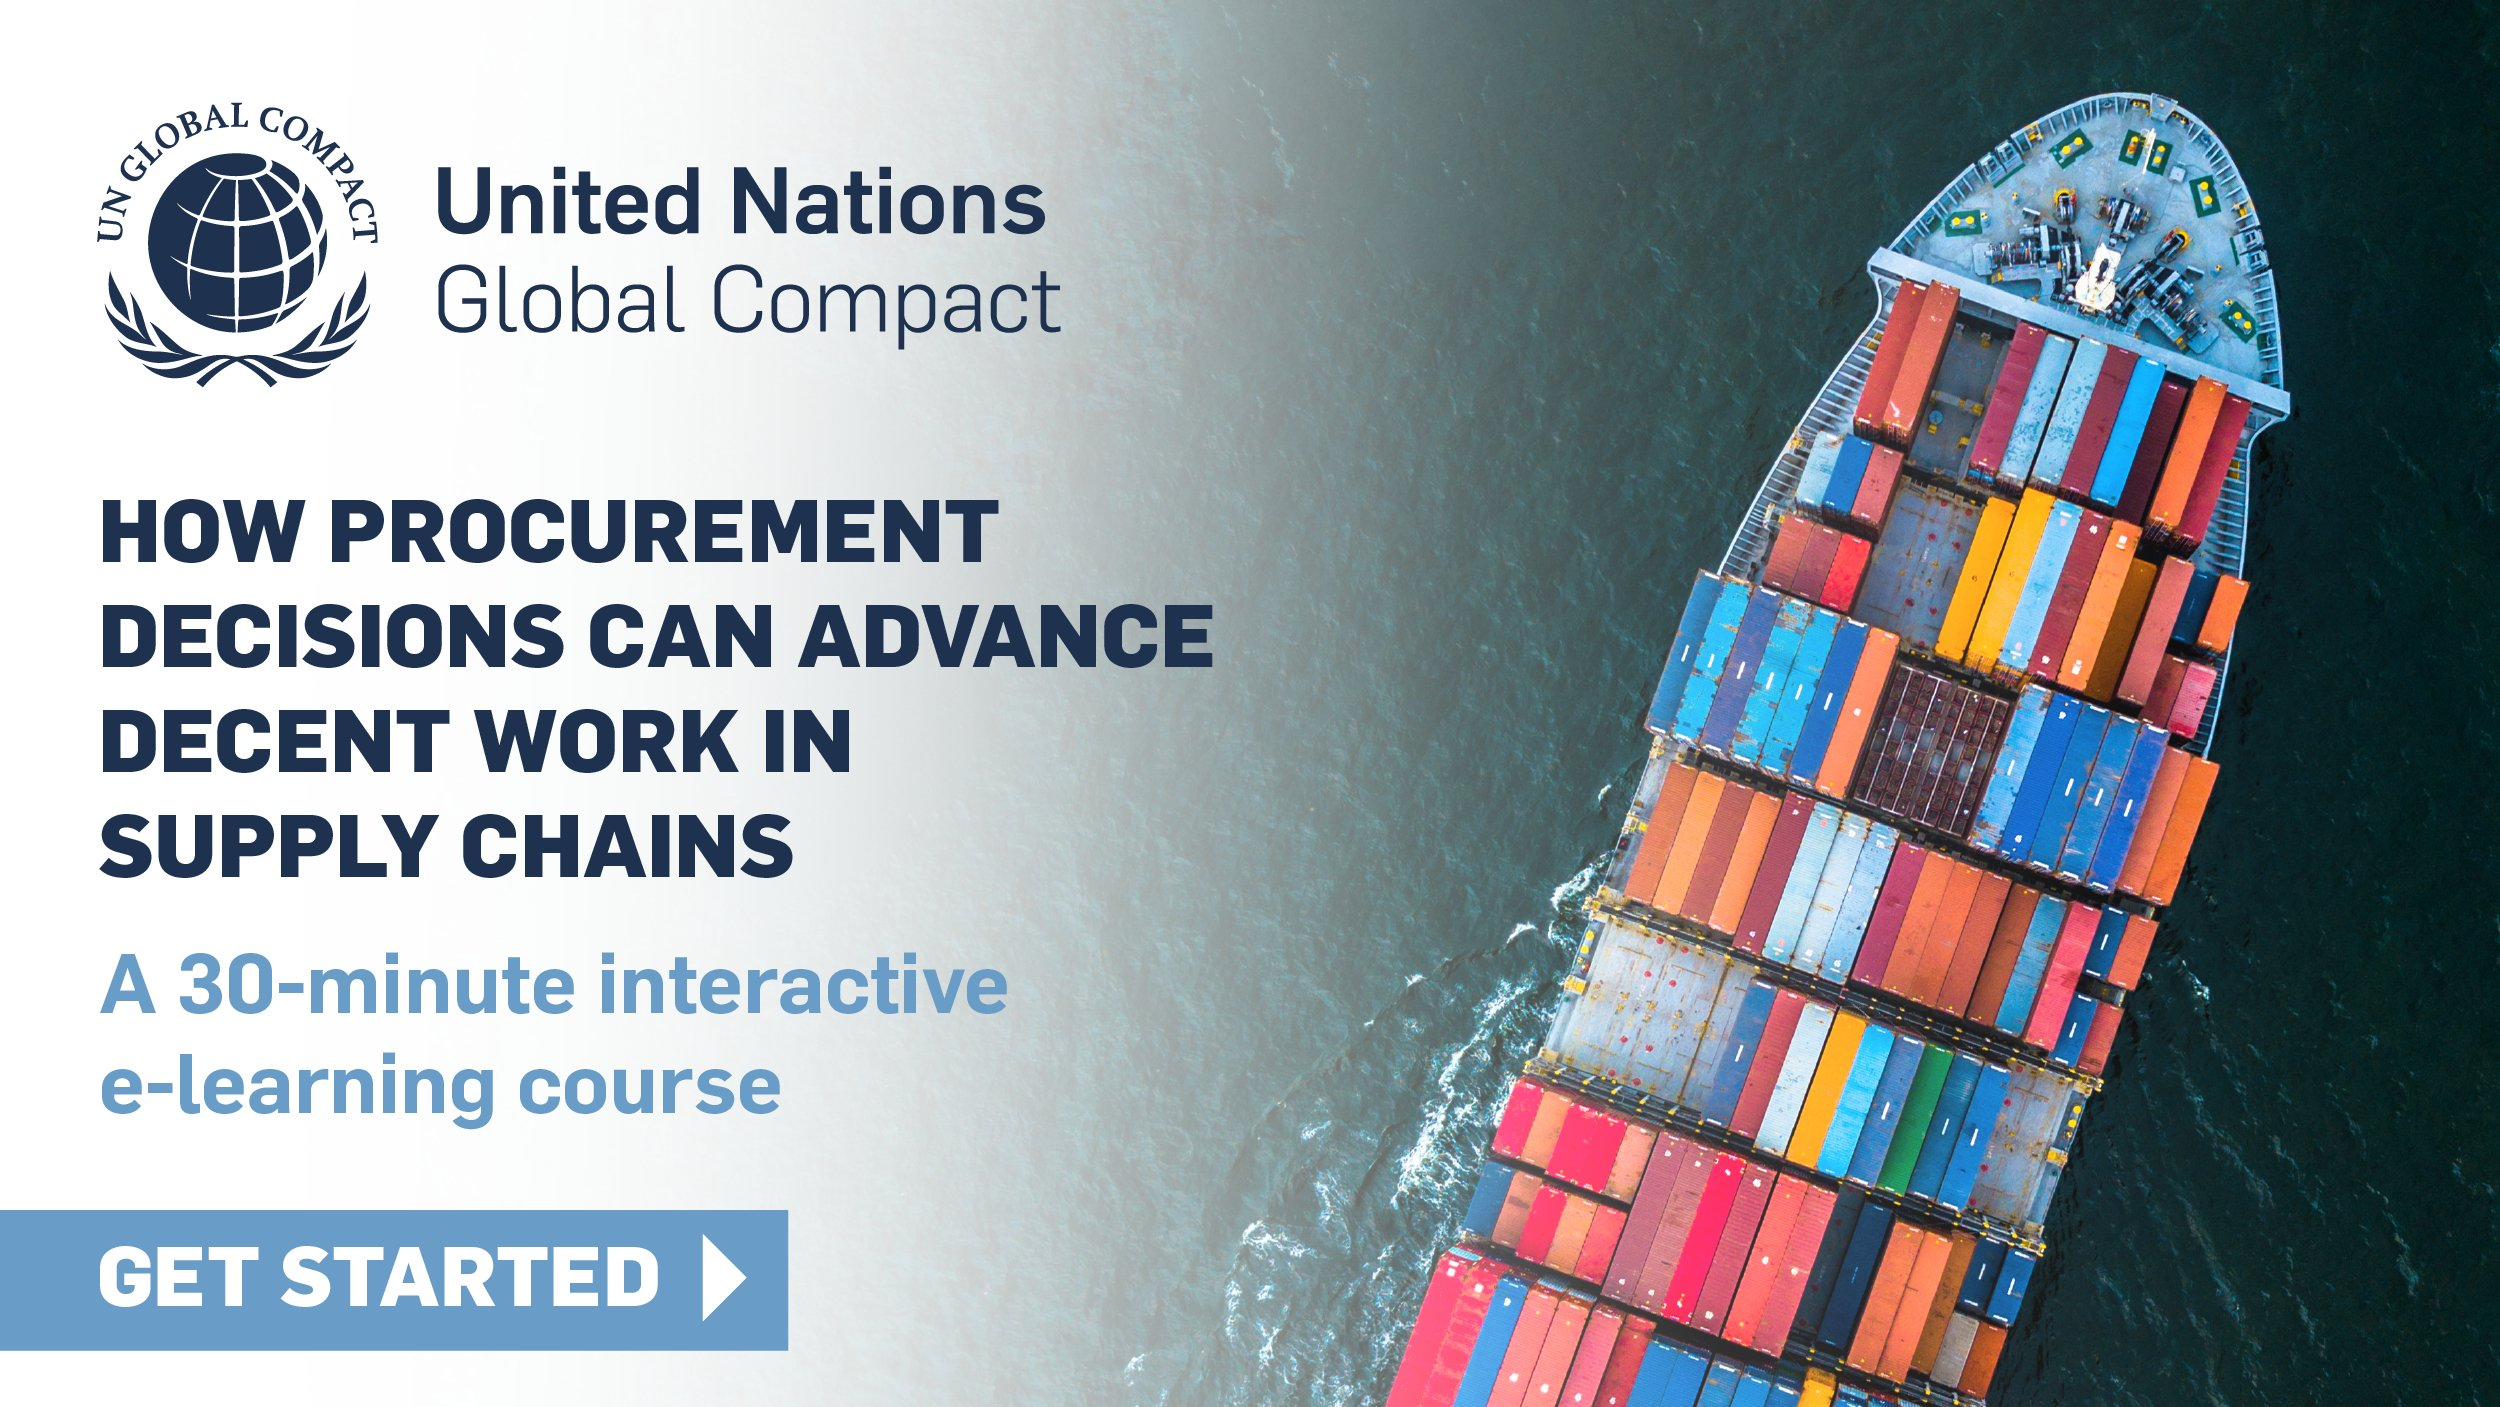 Access the New UN Global Compact Academy E-learning Course on Decent Work in Supply Chains